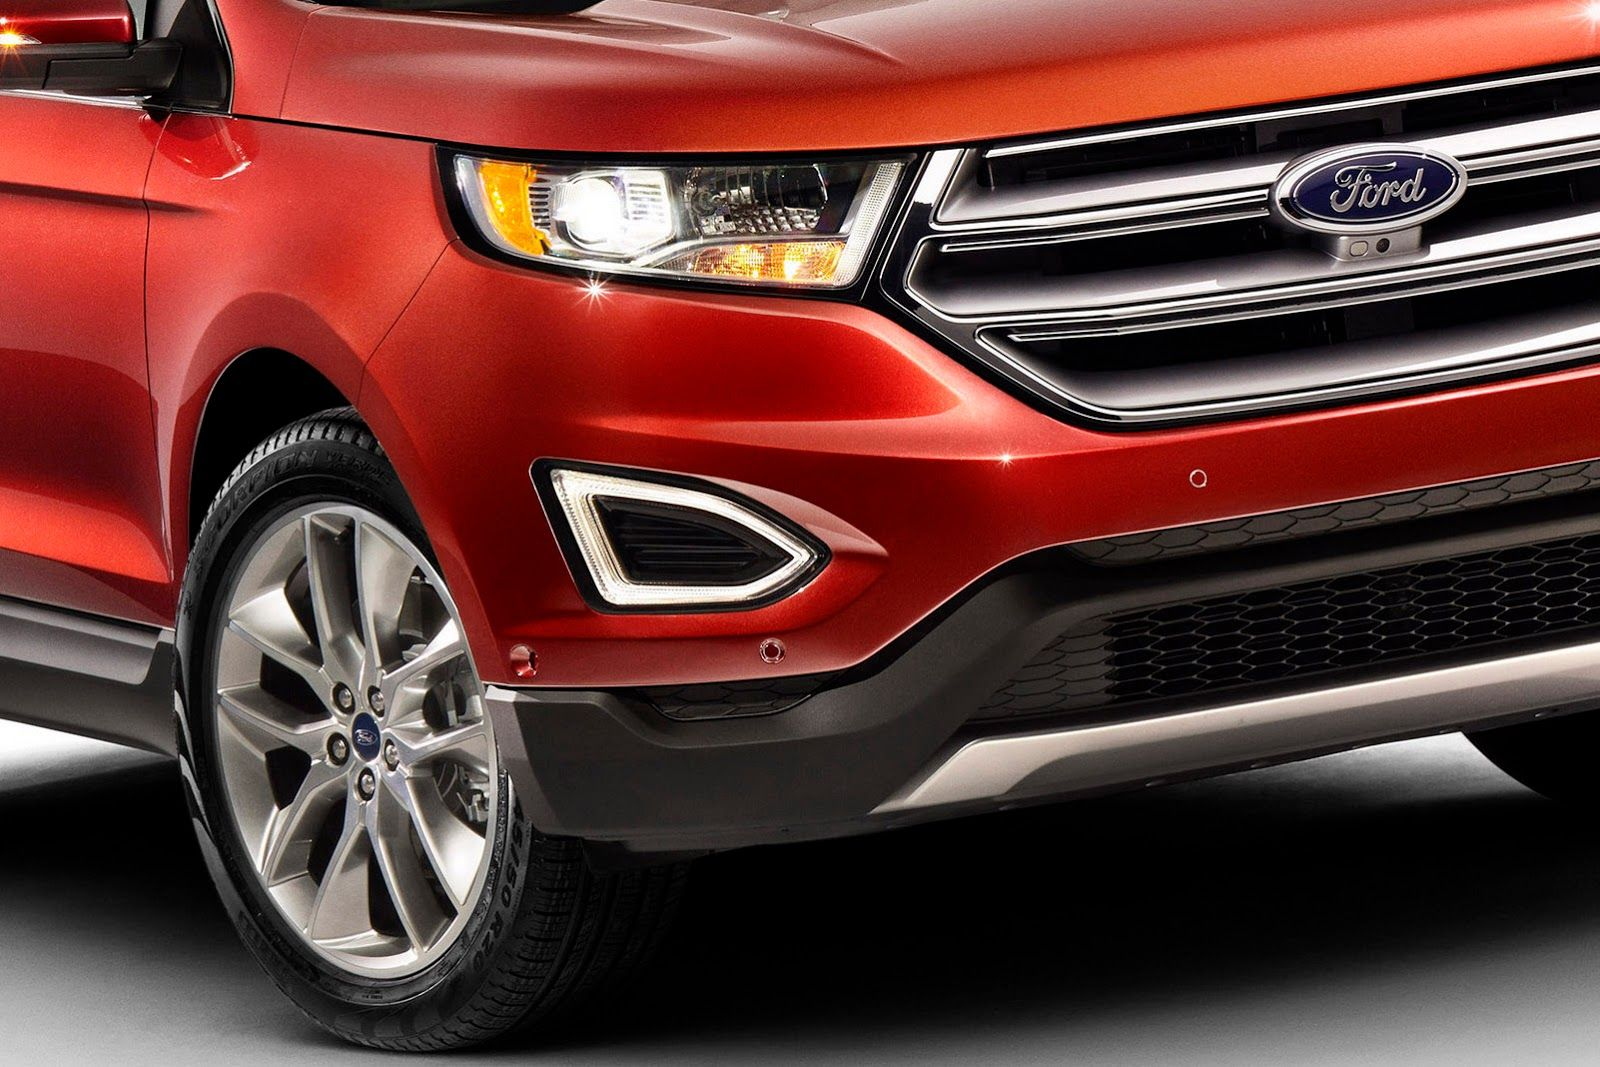 Ford 2015 ford edge